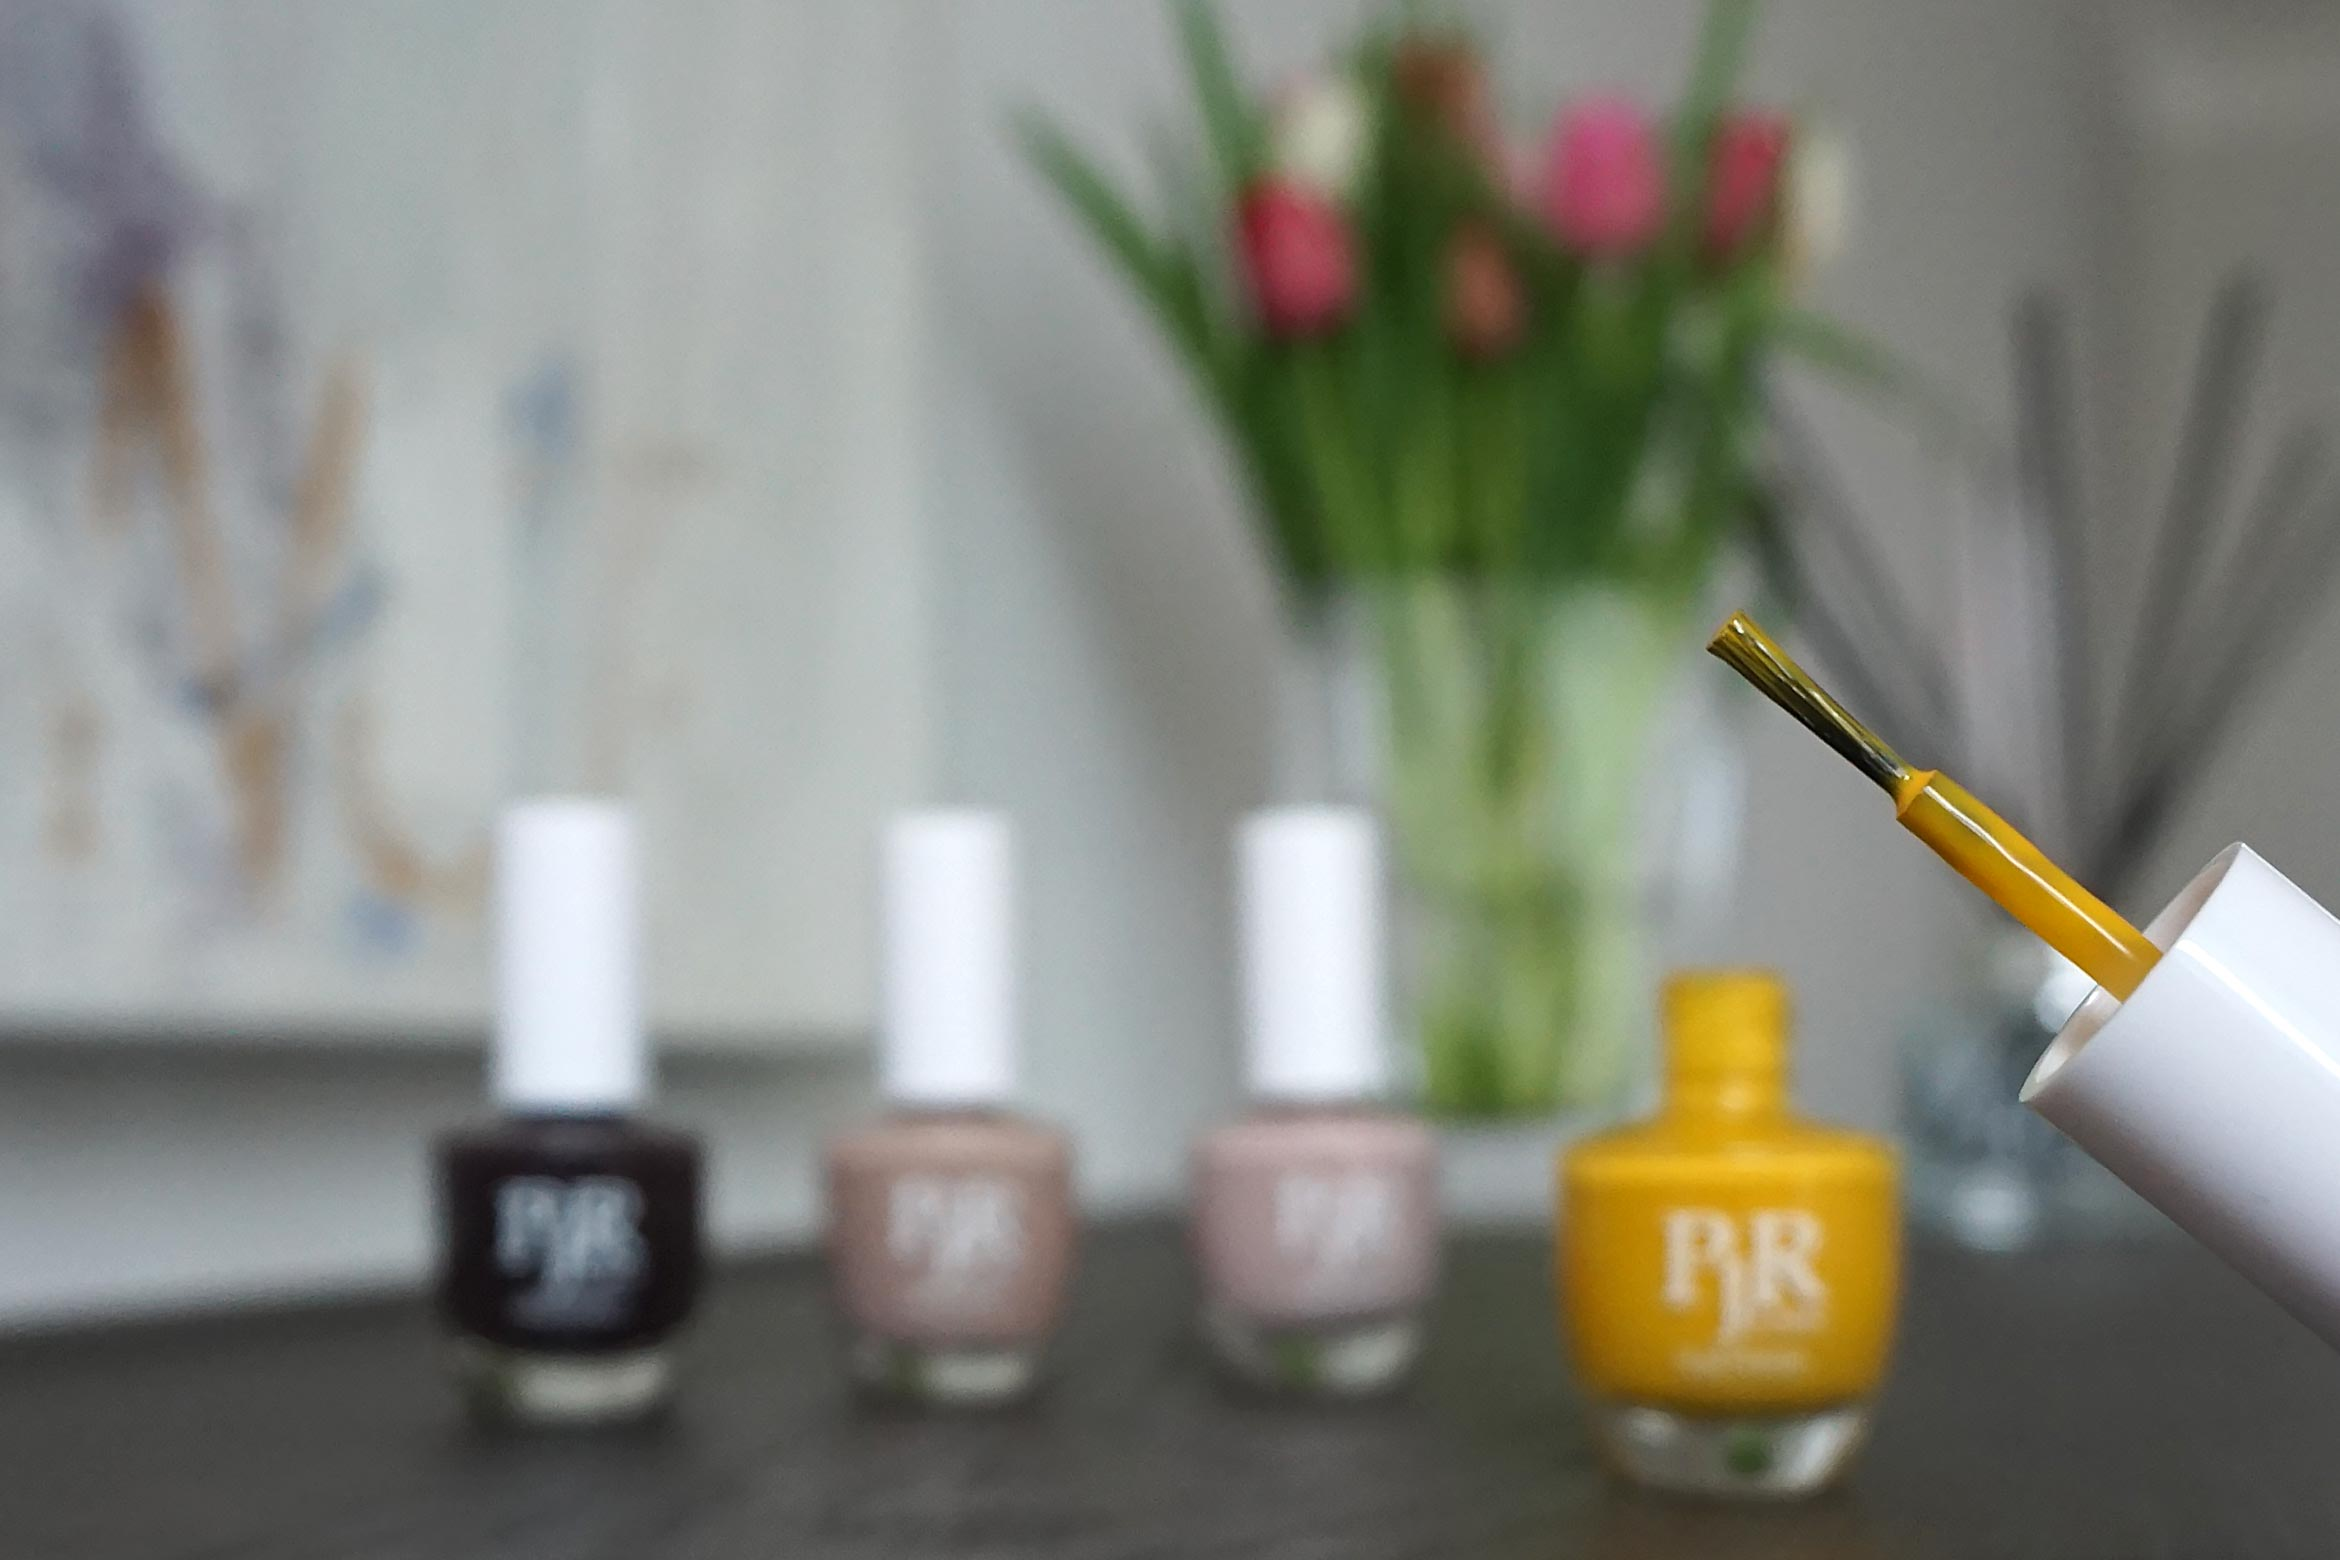 PJR care nagellak review